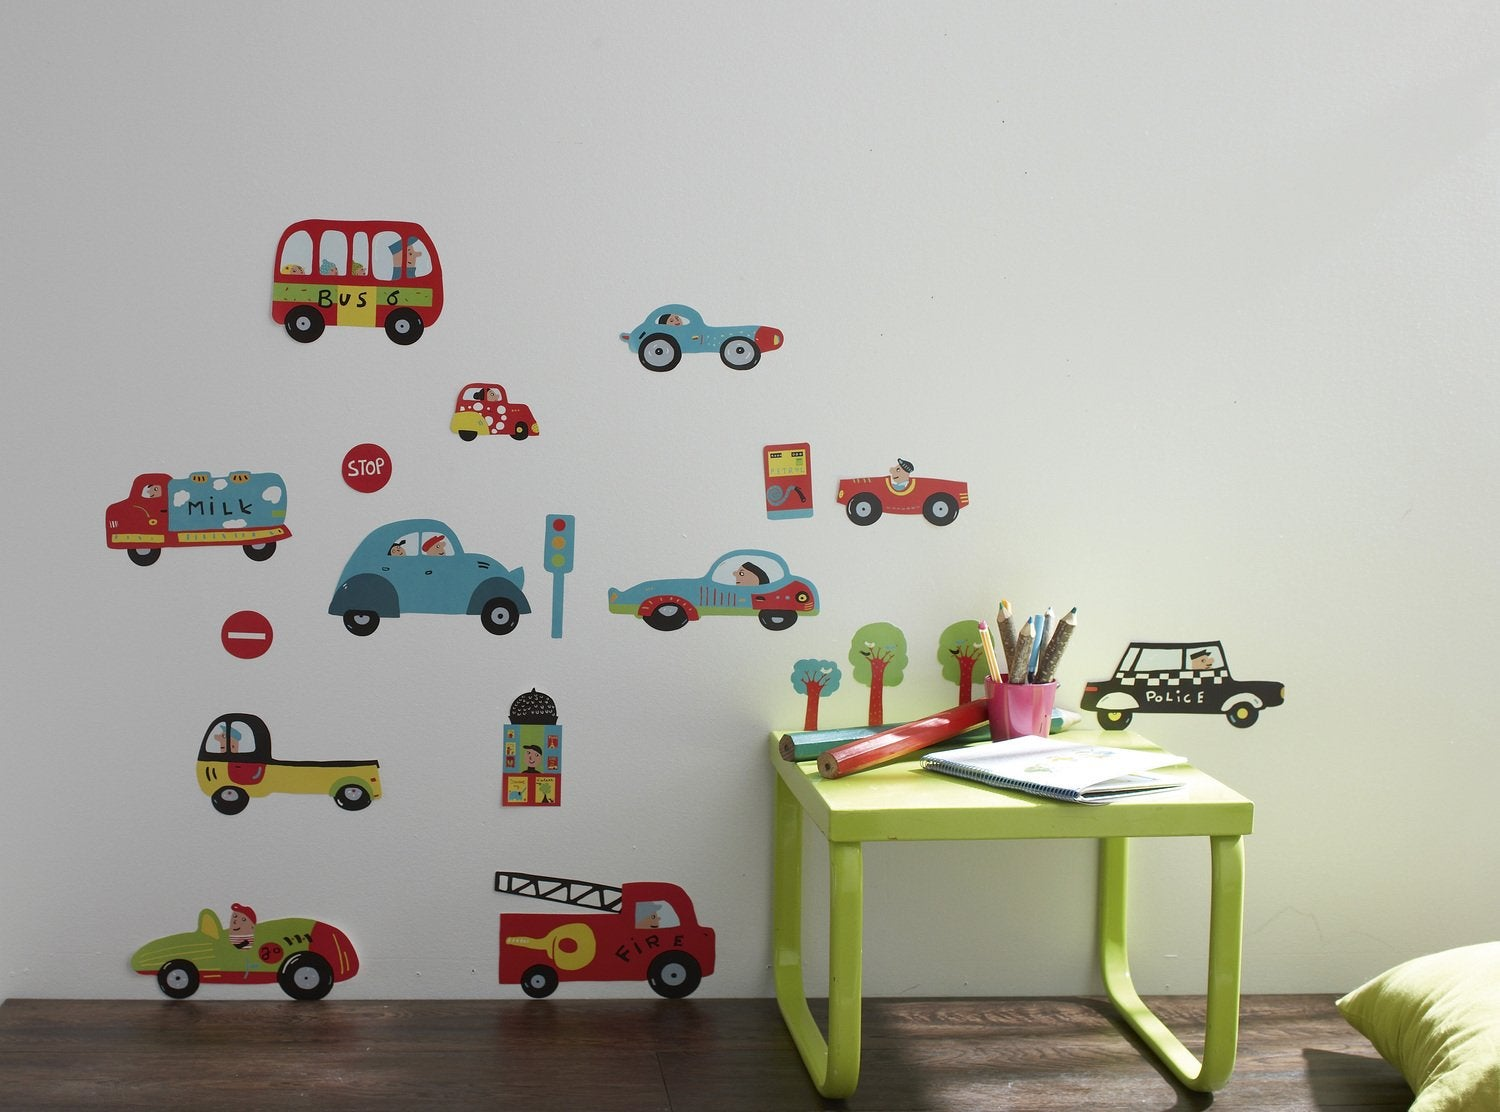 les stickers r veillent les chambres d 39 enfants leroy merlin. Black Bedroom Furniture Sets. Home Design Ideas